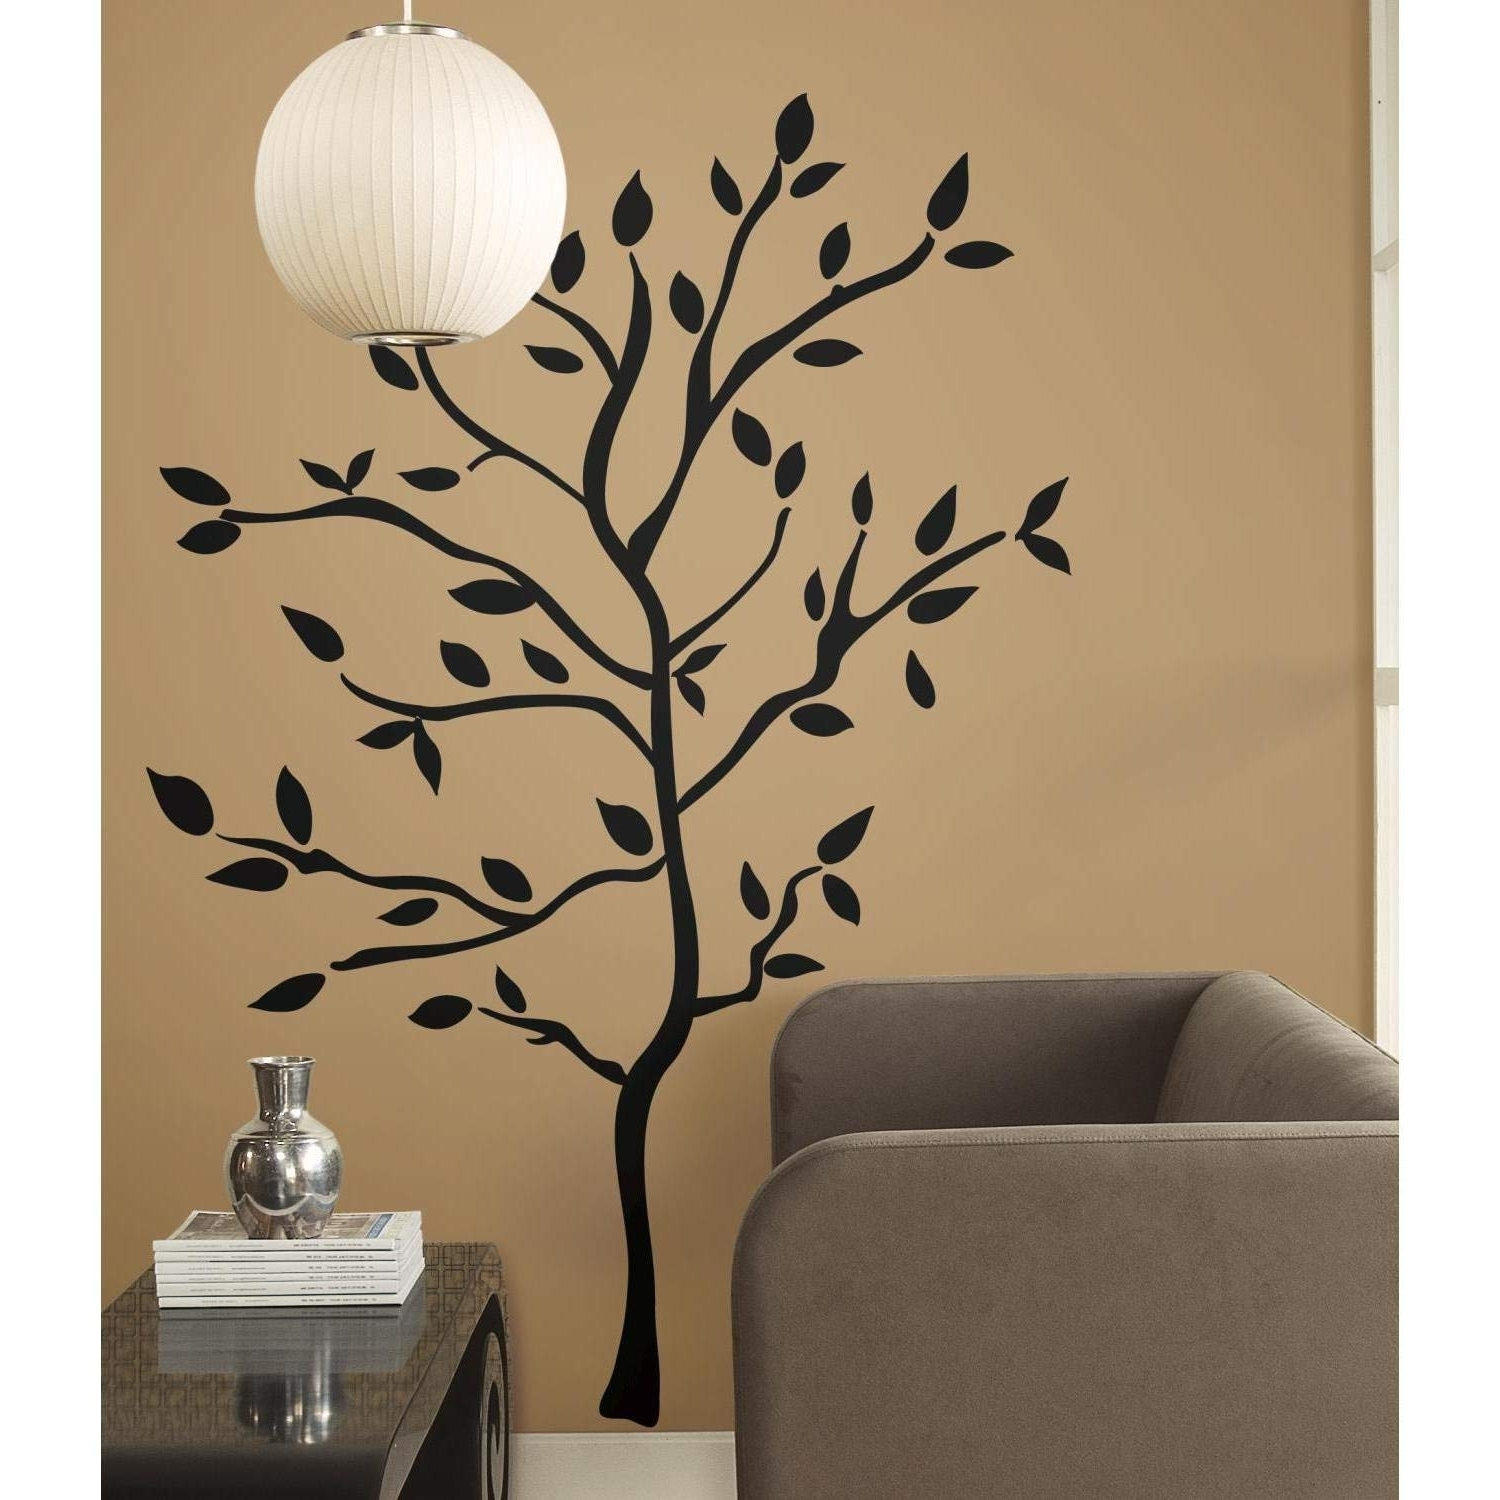 Recent Roommates Rmk1317Gm Tree Branches Peel And Stick Wall Decals, Wall Intended For Wall Sticker Art (View 7 of 15)